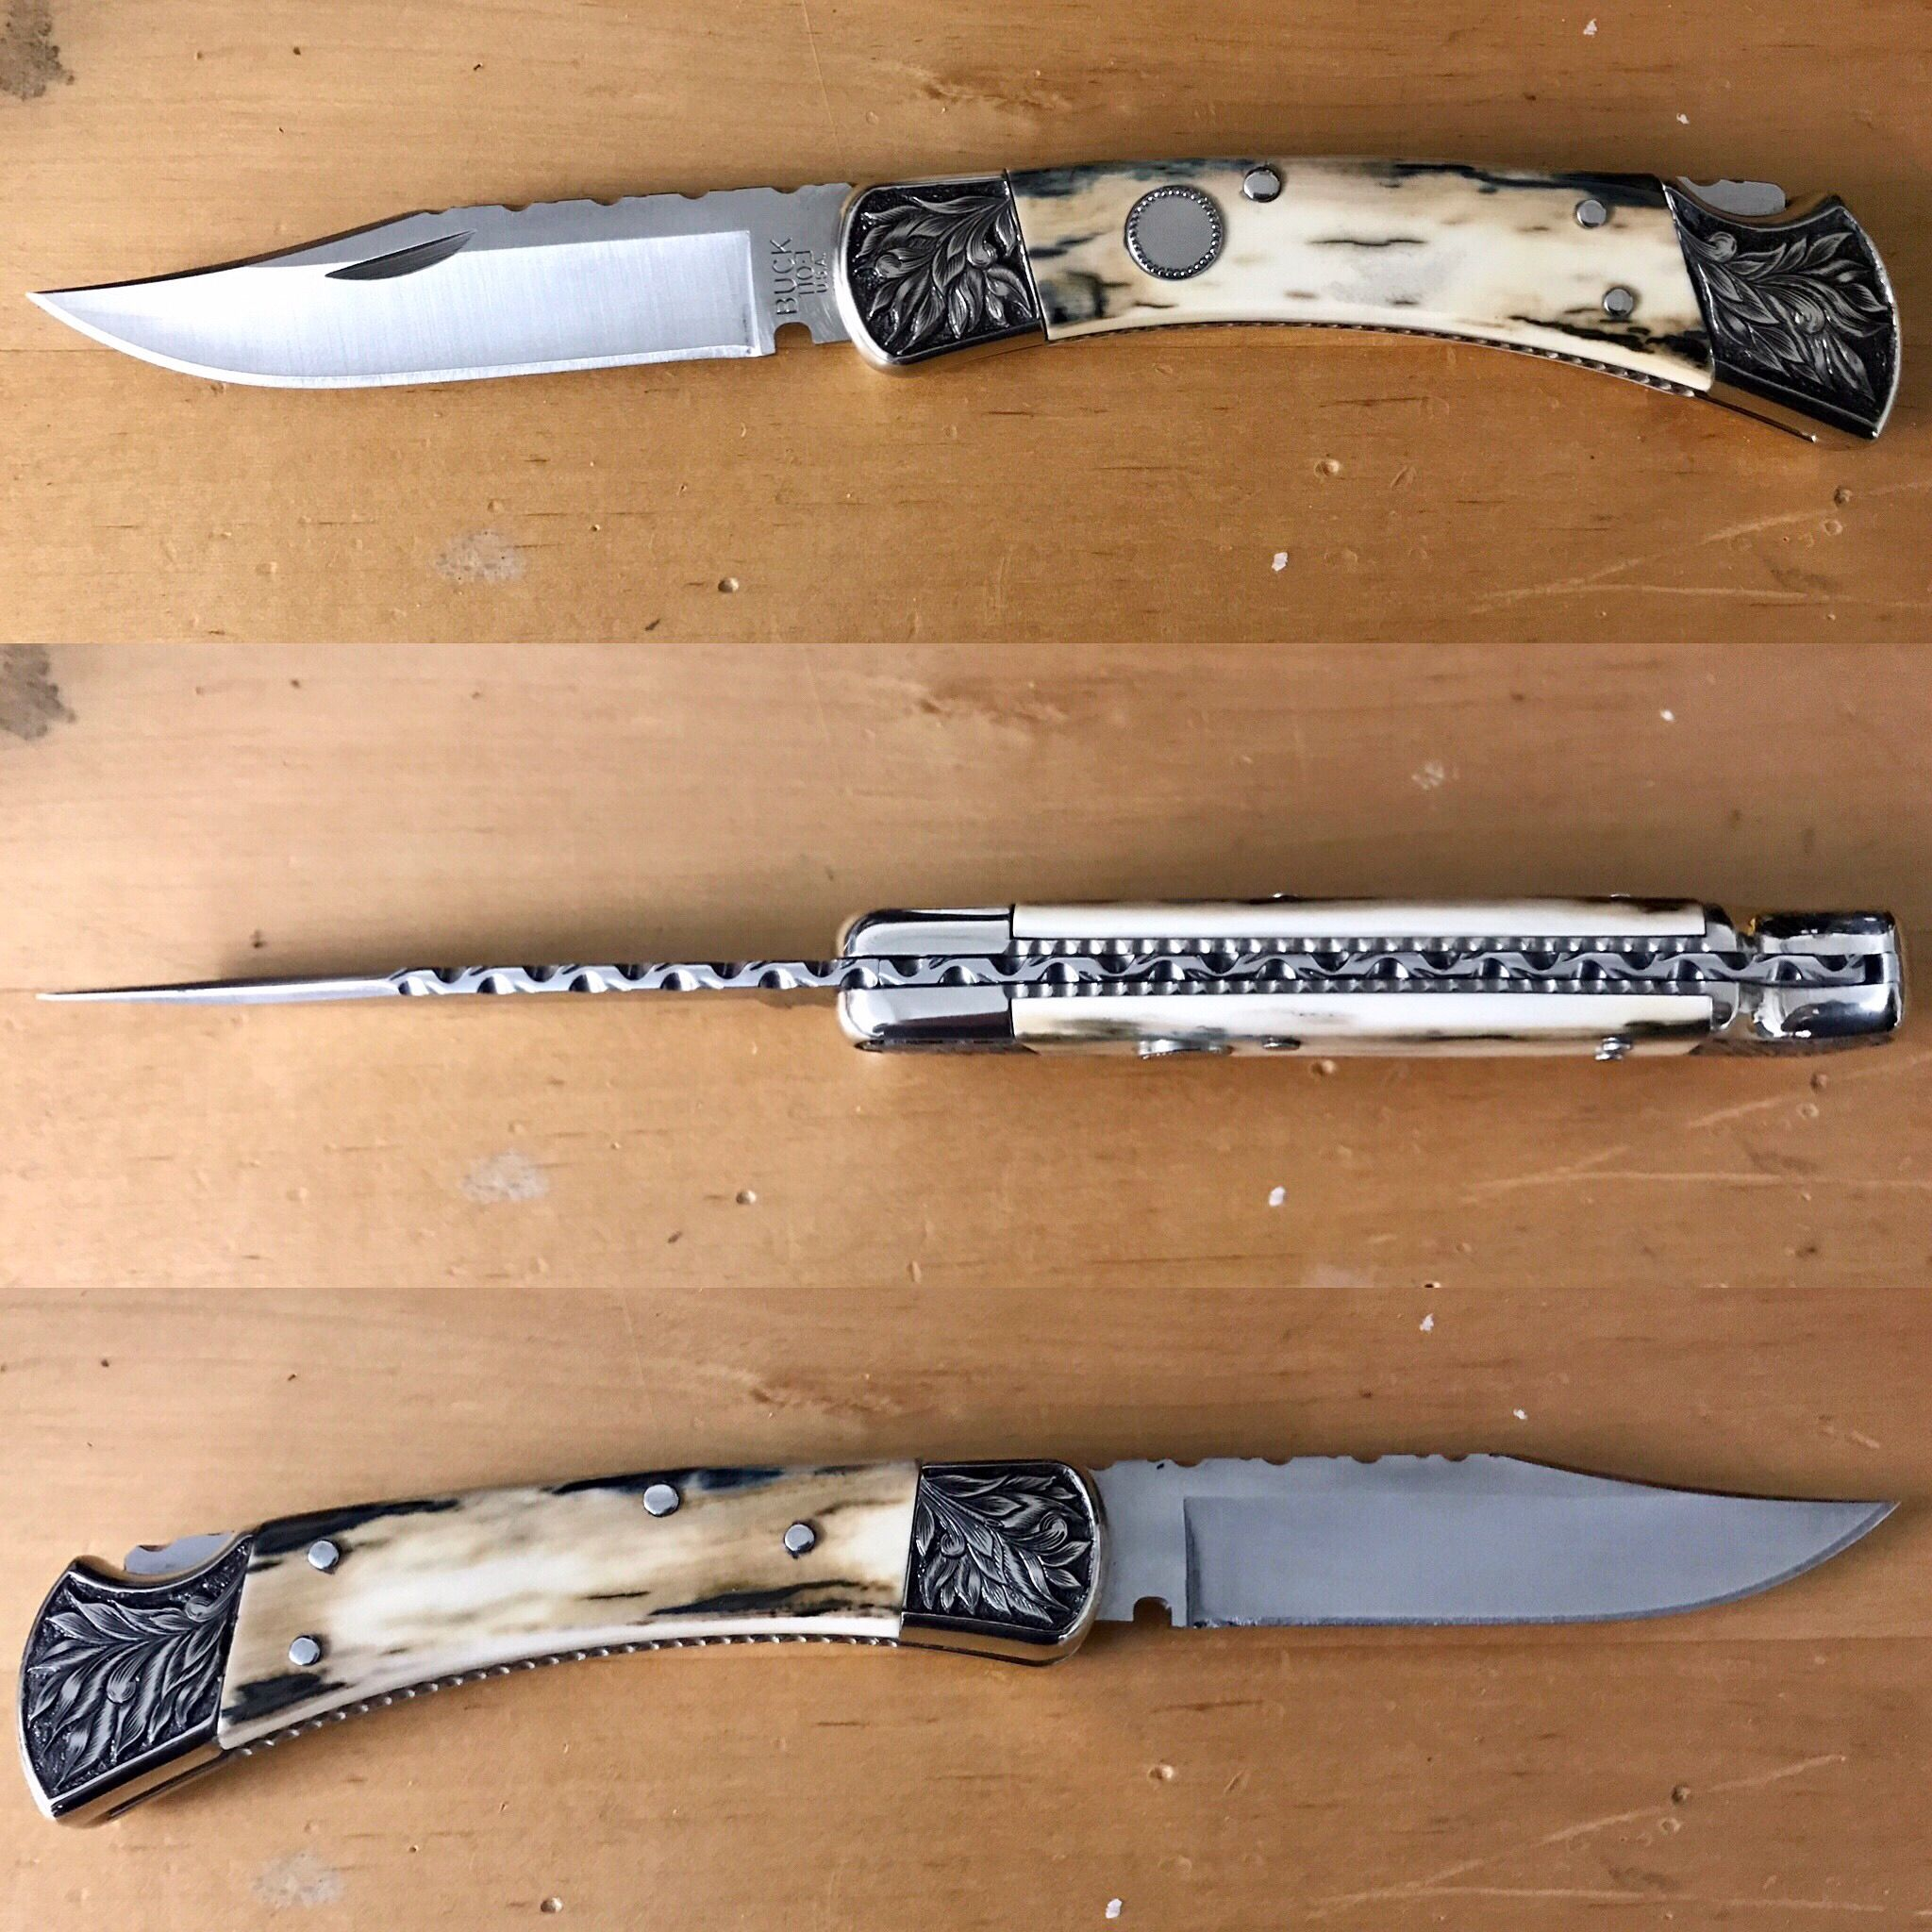 Customized Buck 110 D/A model with custom hand done handle scales